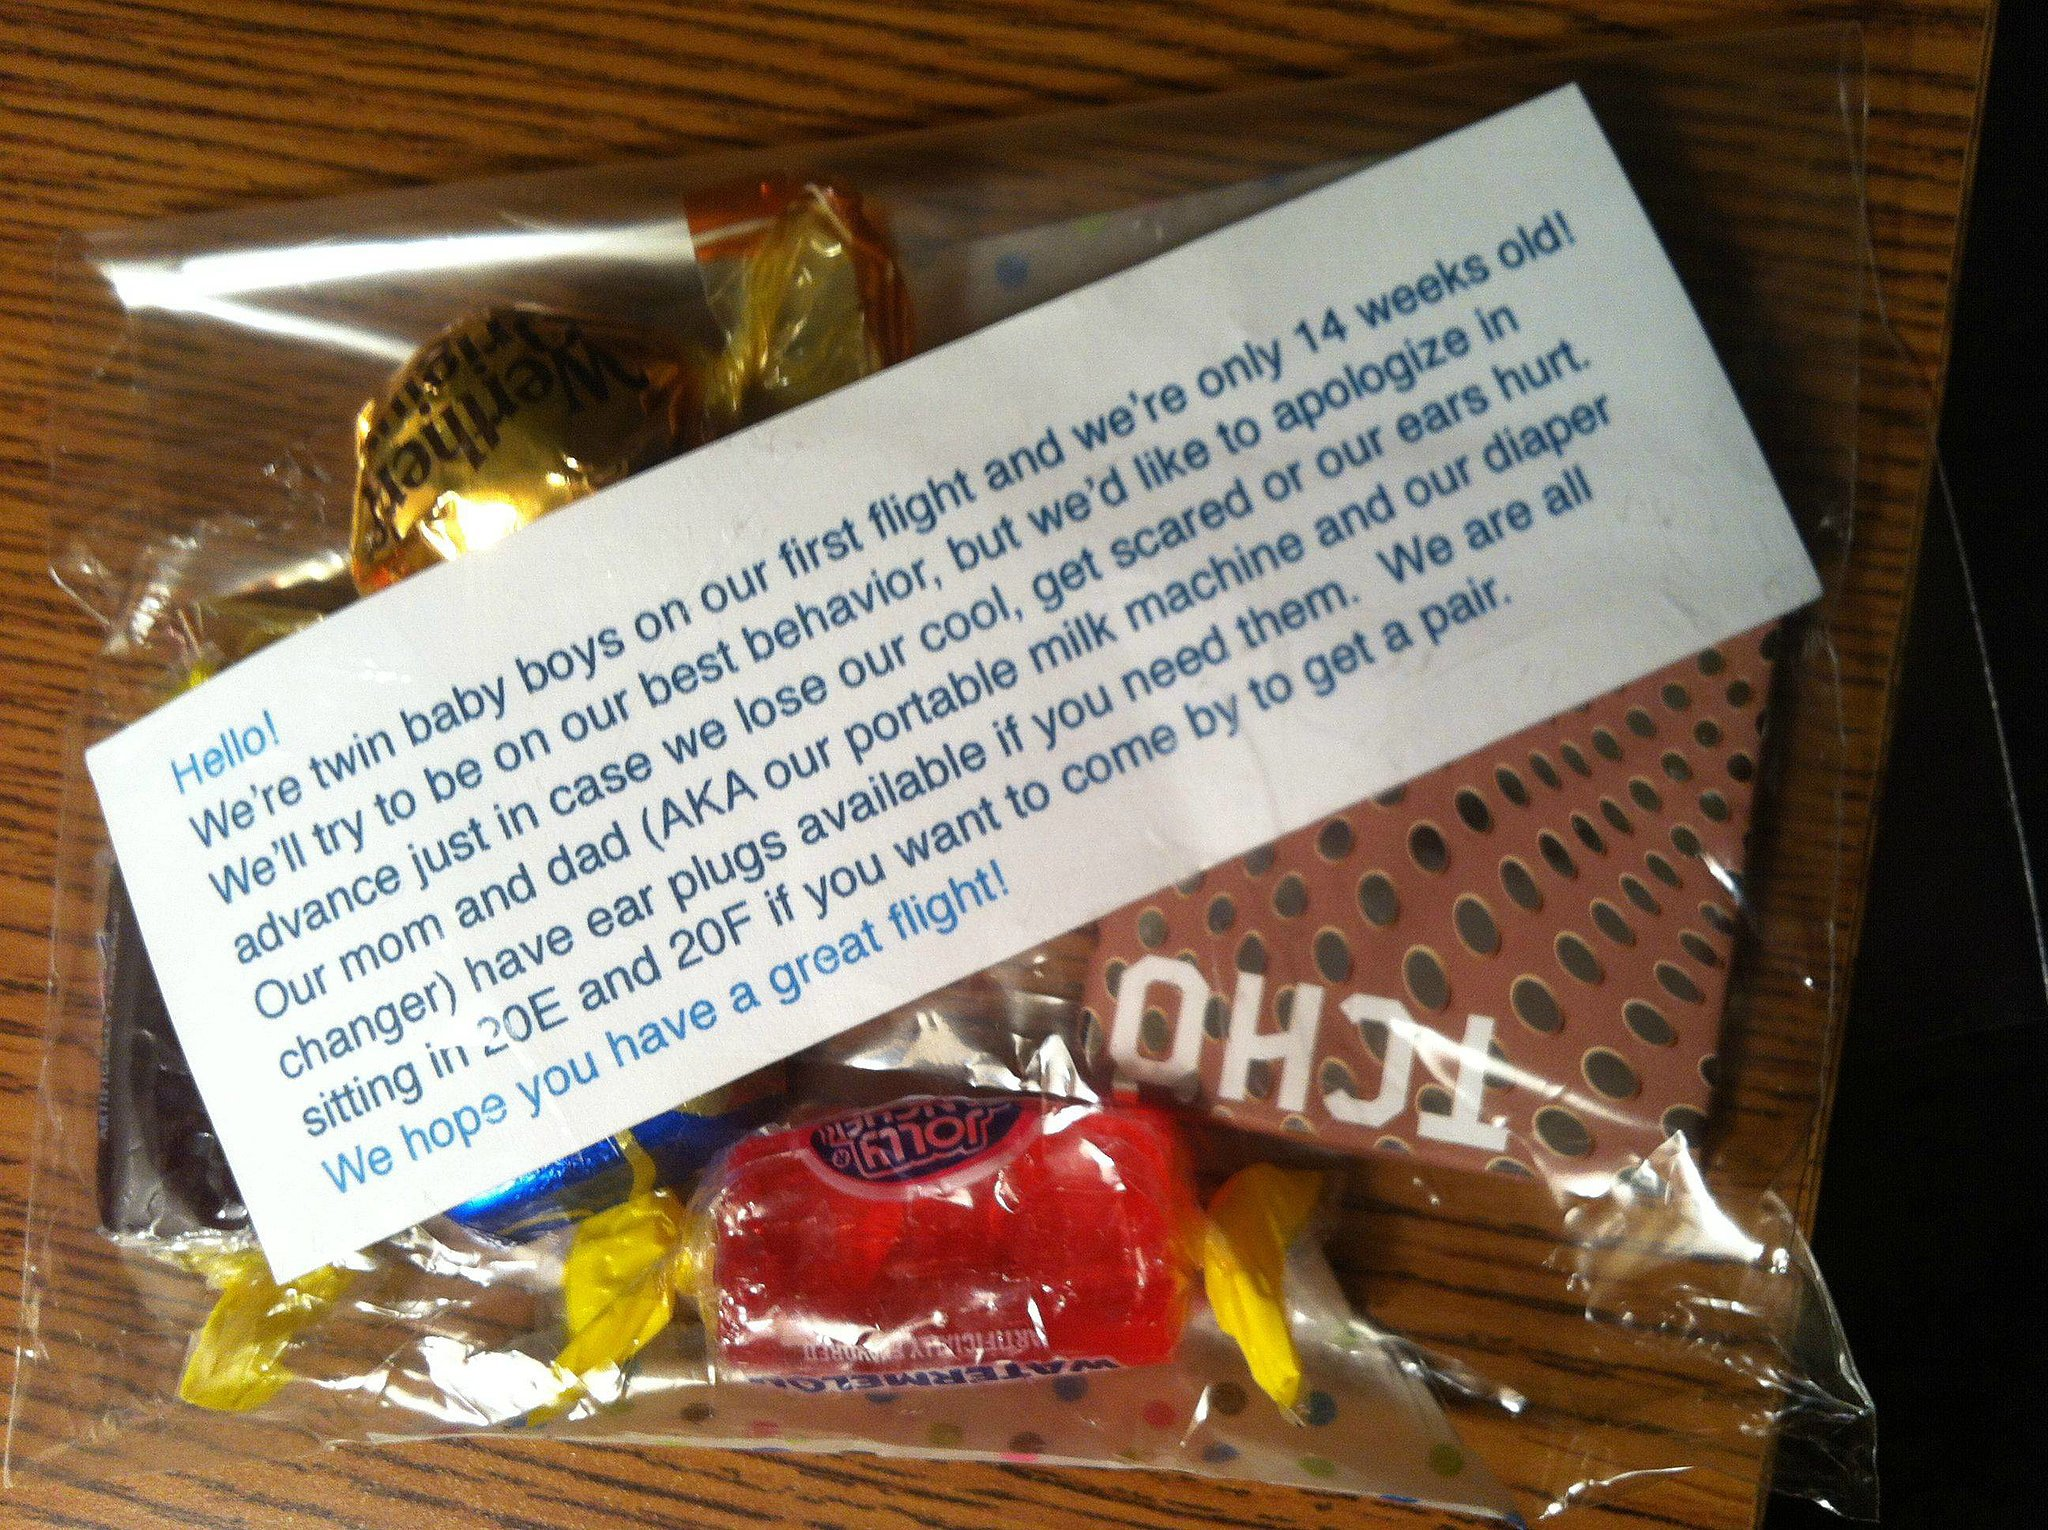 Thoughtful Gesture by Parents on a Plane